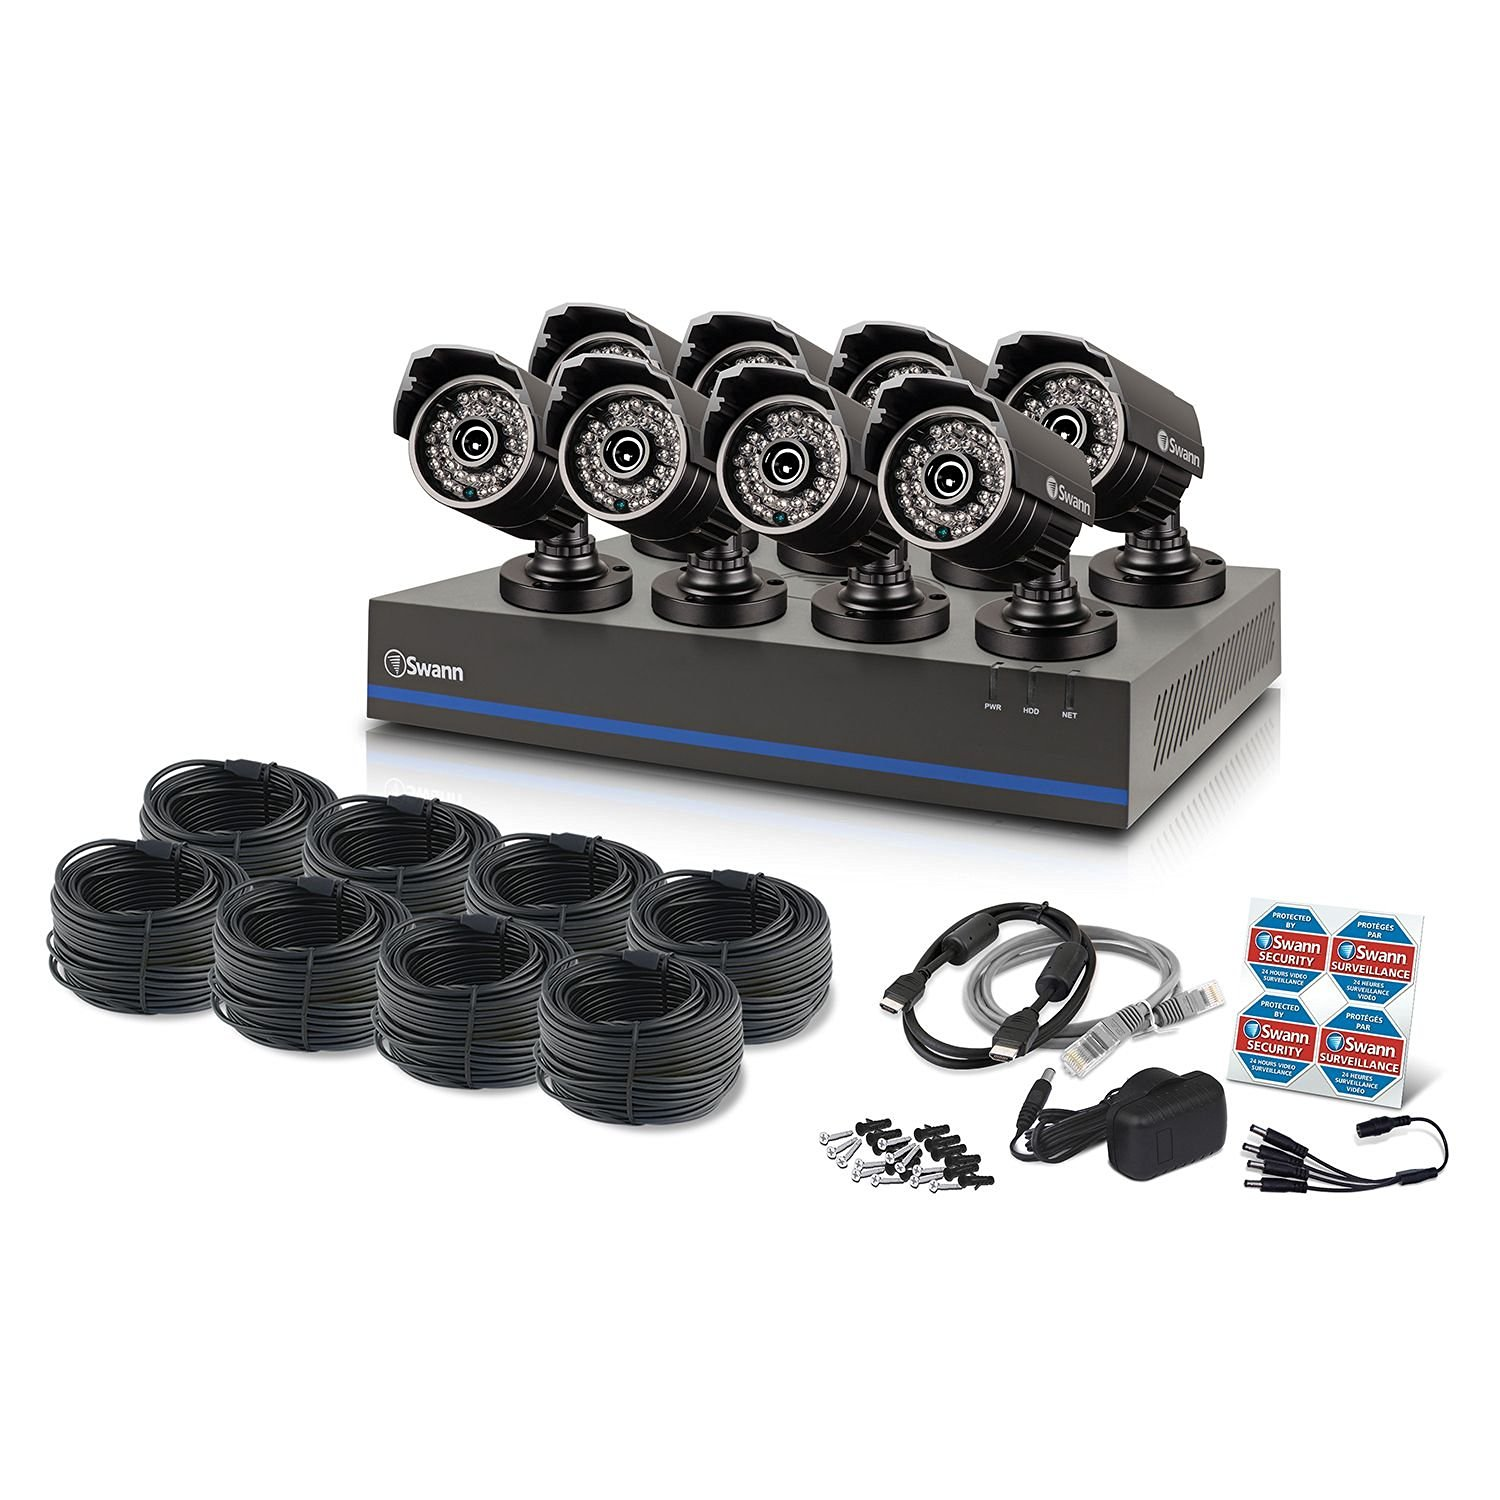 Swann TVI DVR Security System - 8 1080p Cameras, 2TB HD, and 100' Night Vision